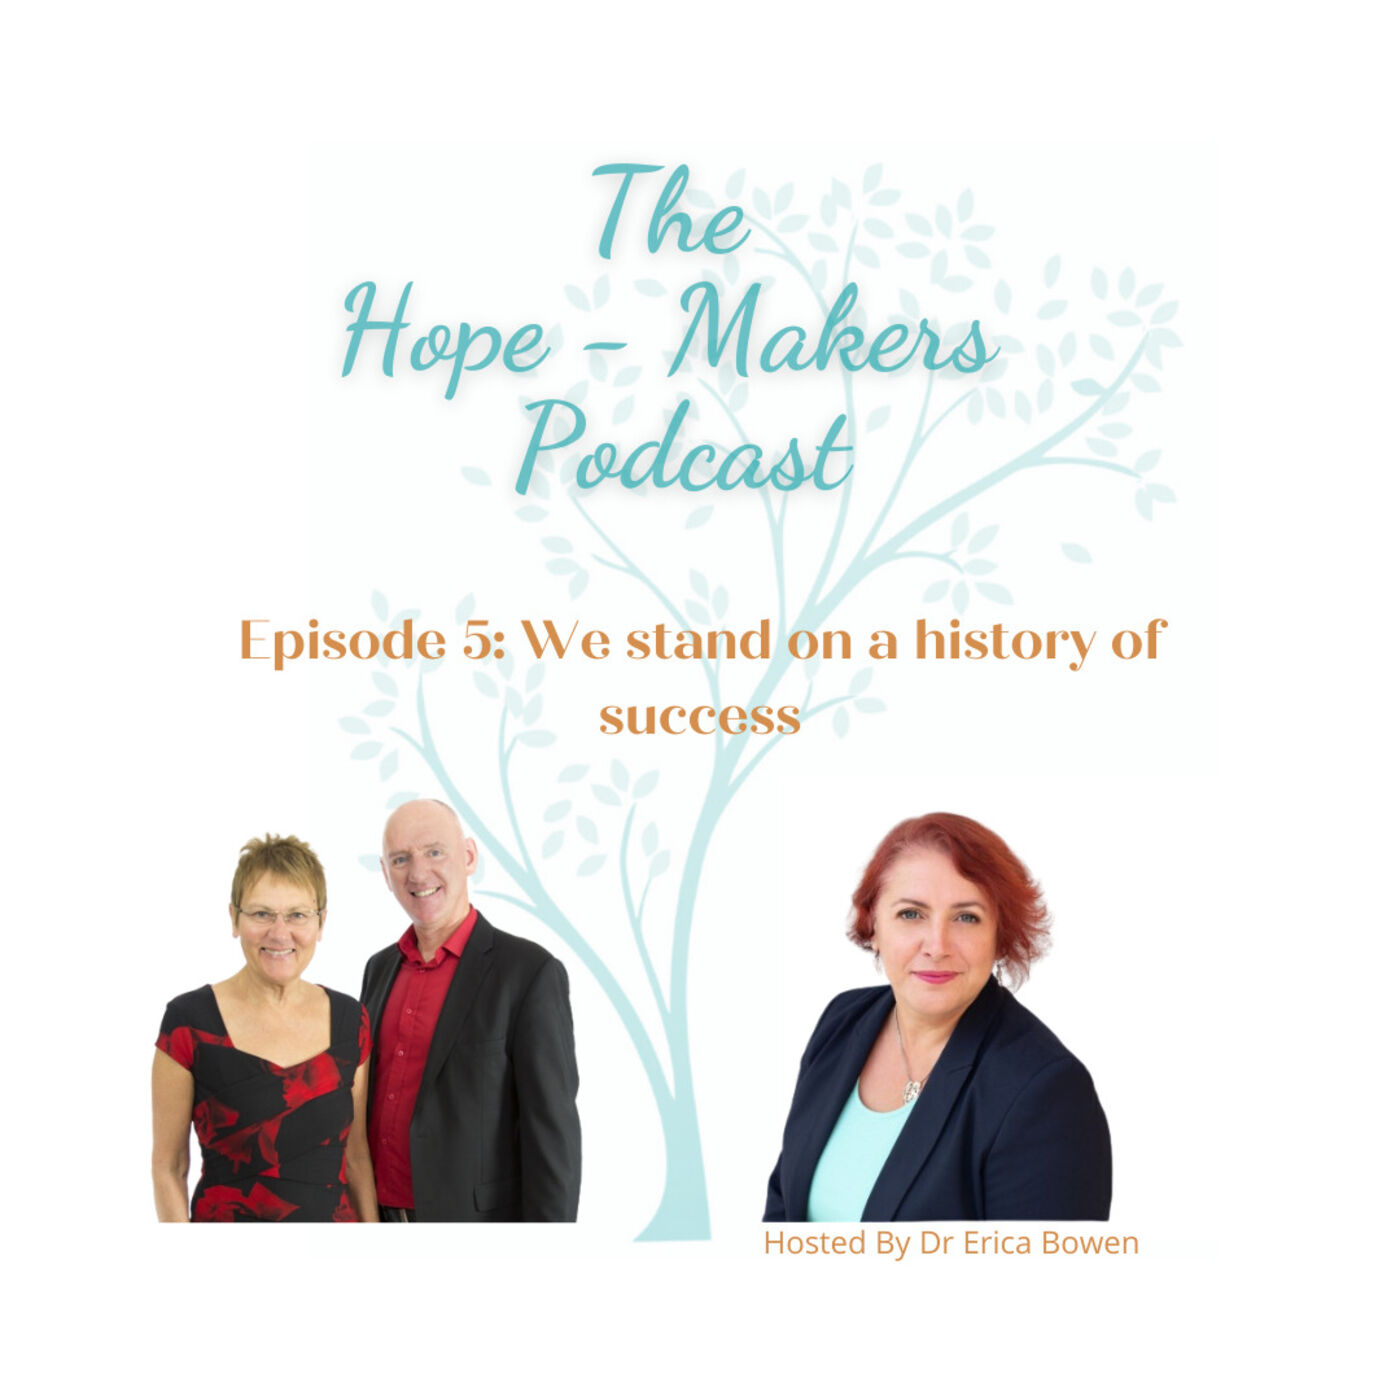 Episode 5: We stand on a history of success with Tony Burgess and Julie French